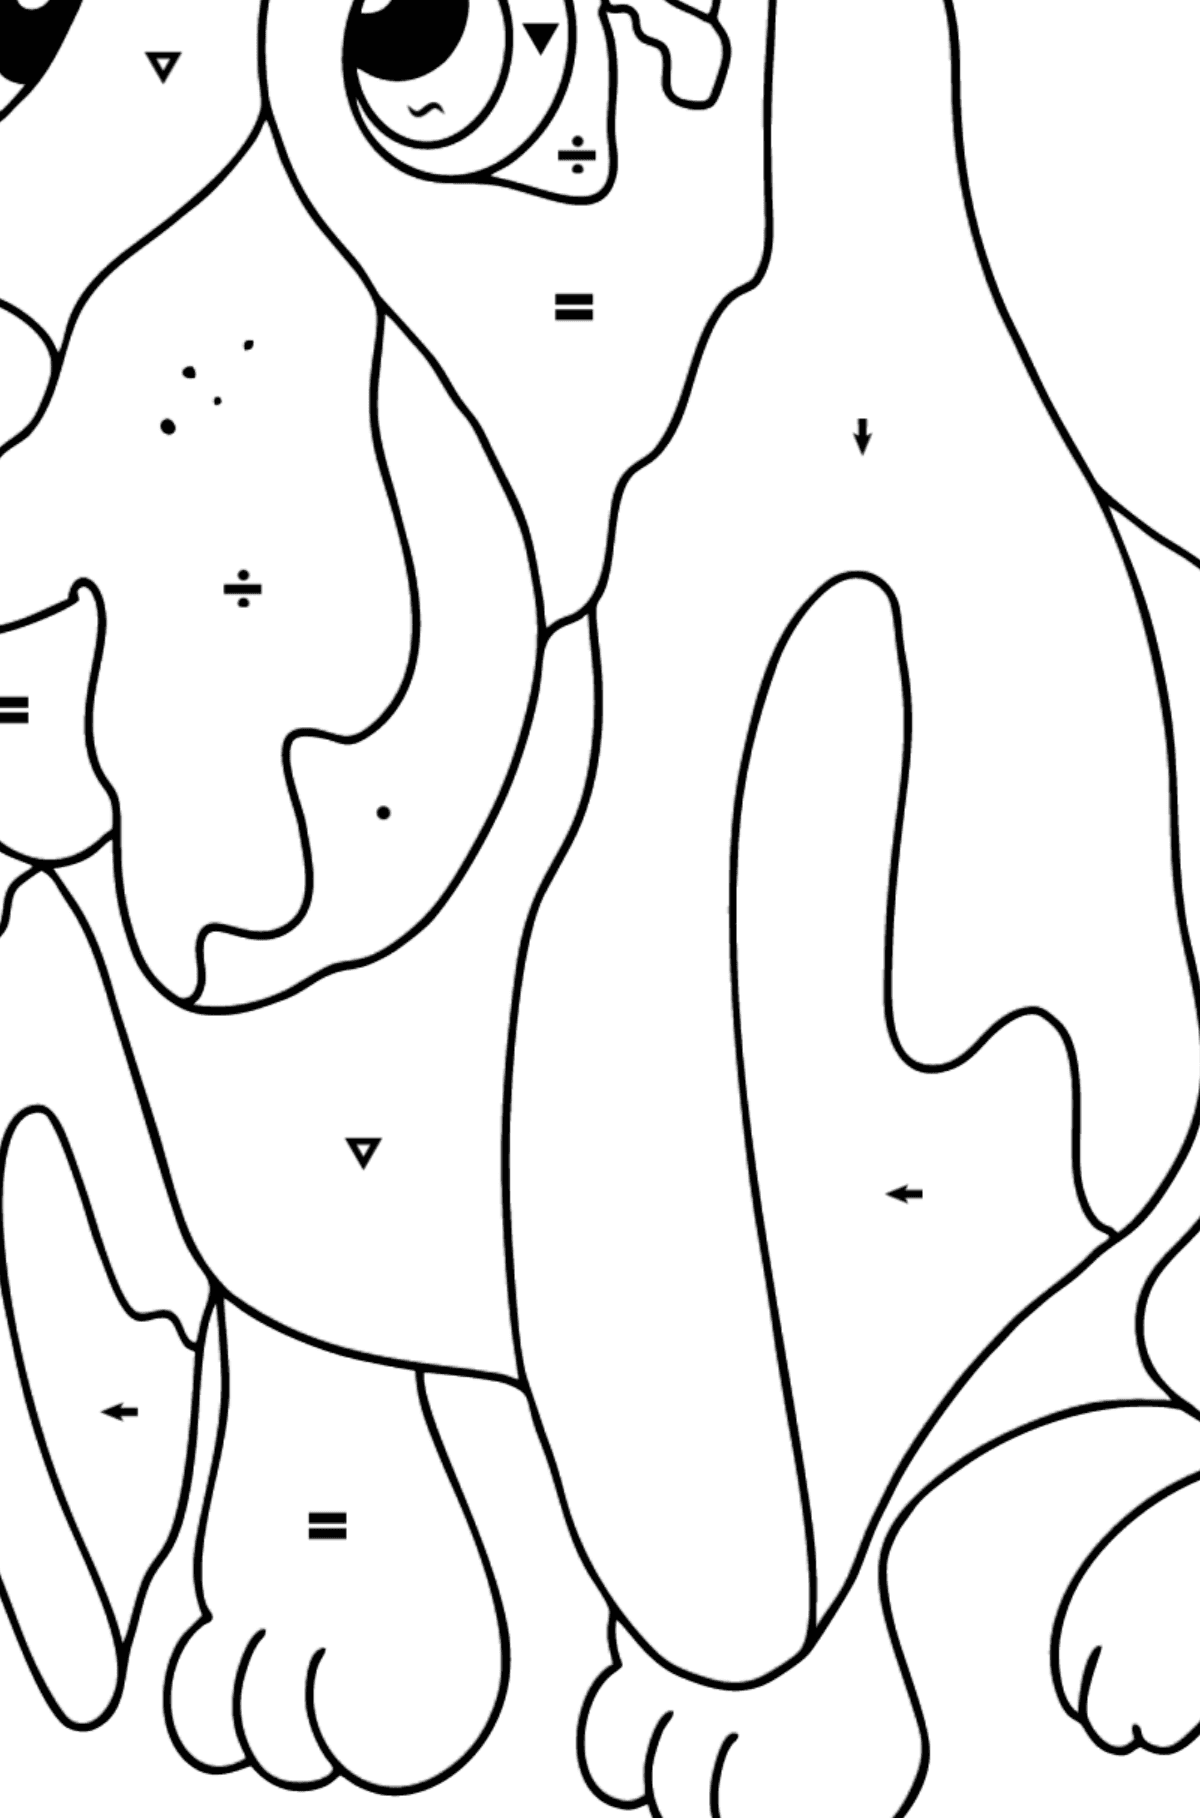 Coloring Page - A Dog with a Bone - Coloring by Symbols for Kids